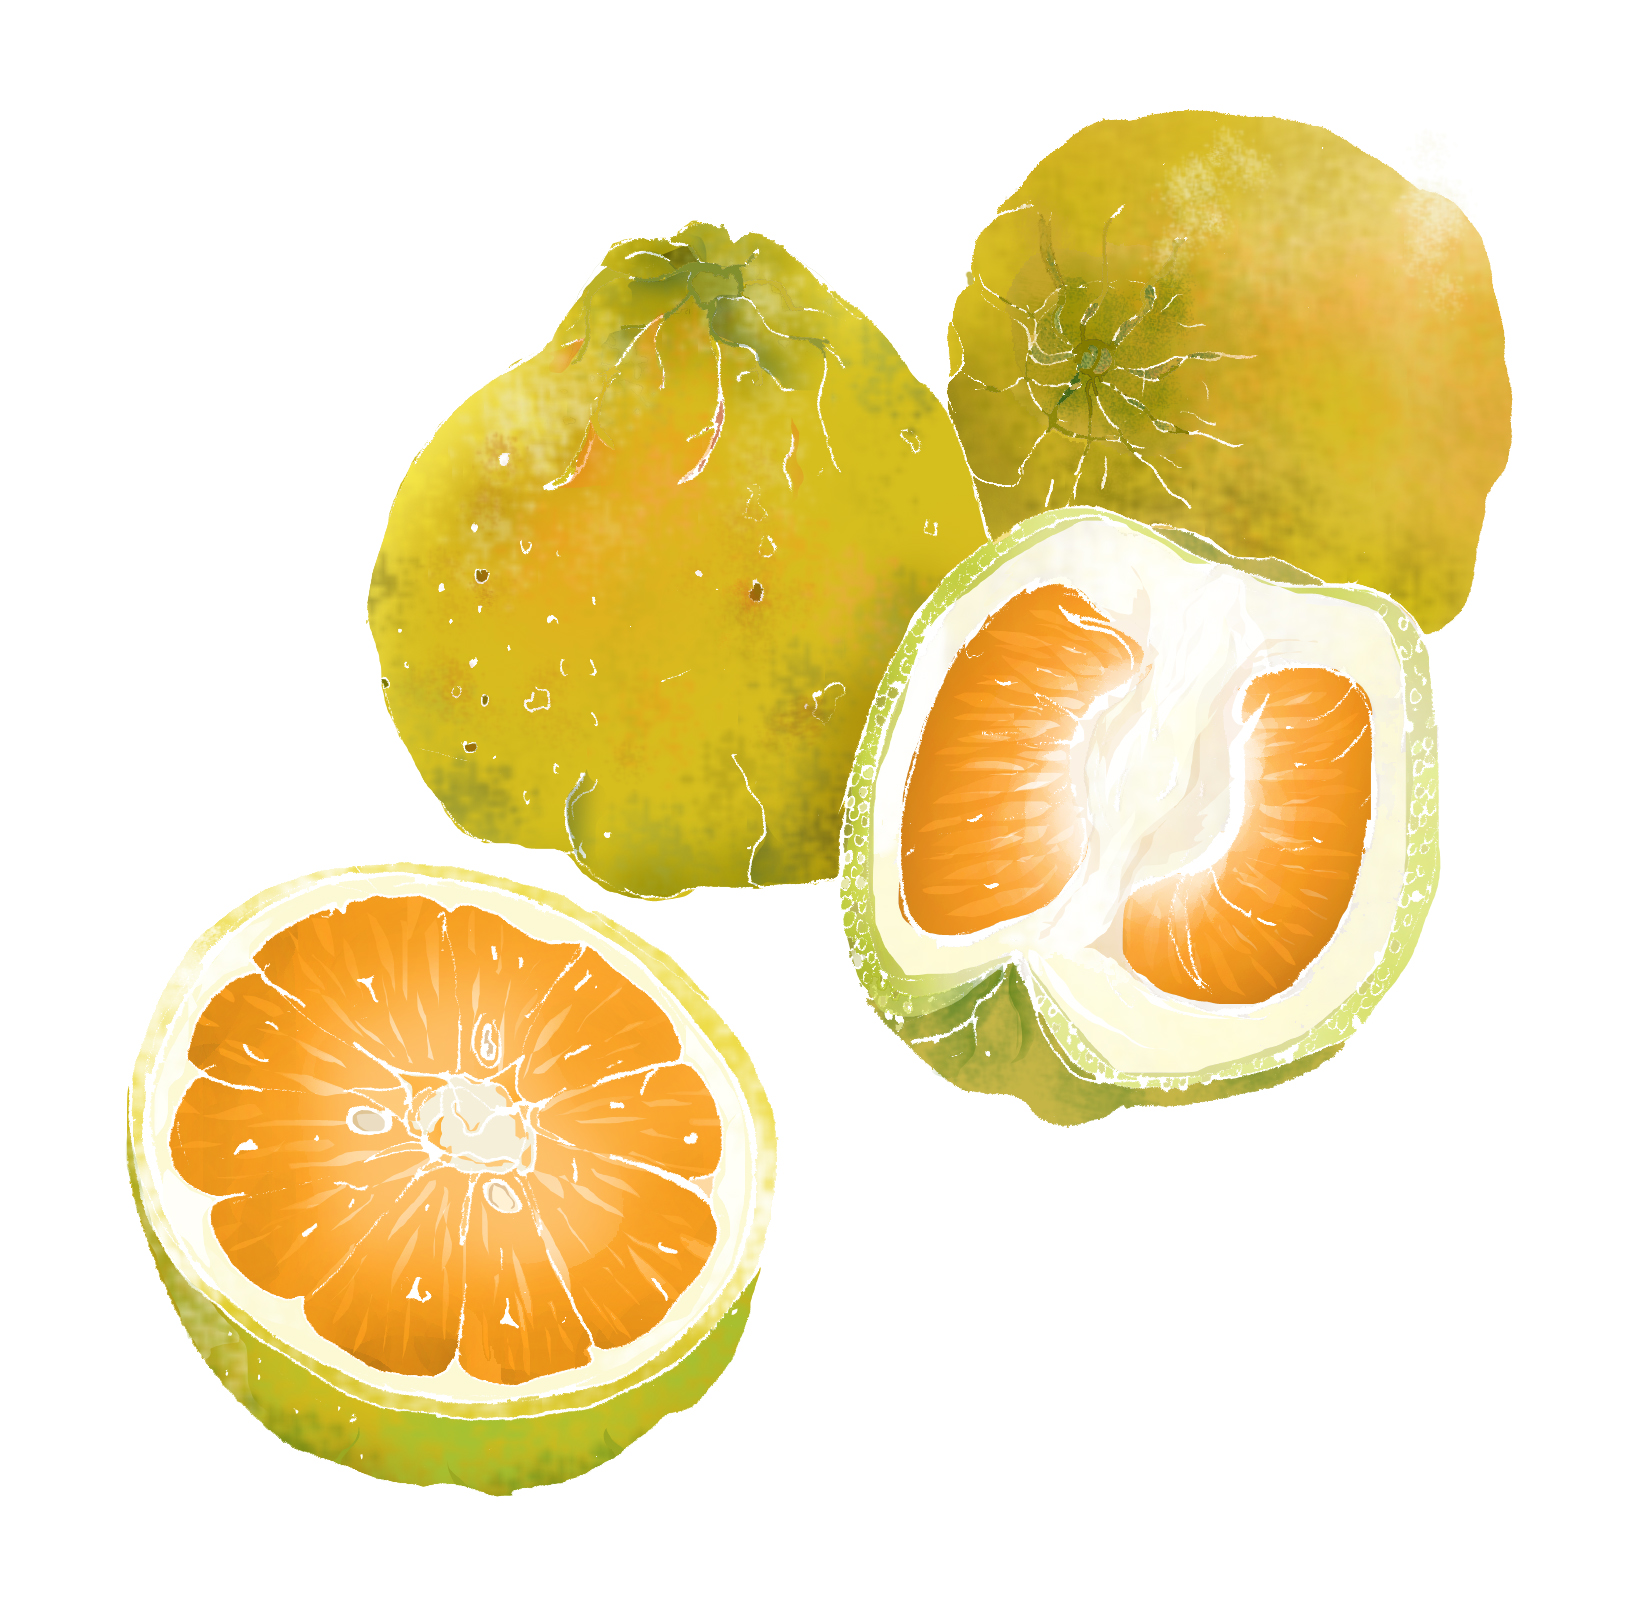 Freehand Drawing Ugli Fruit Icon Royalty Free Cliparts, Vectors, And Stock  Illustration. Image 31586877.